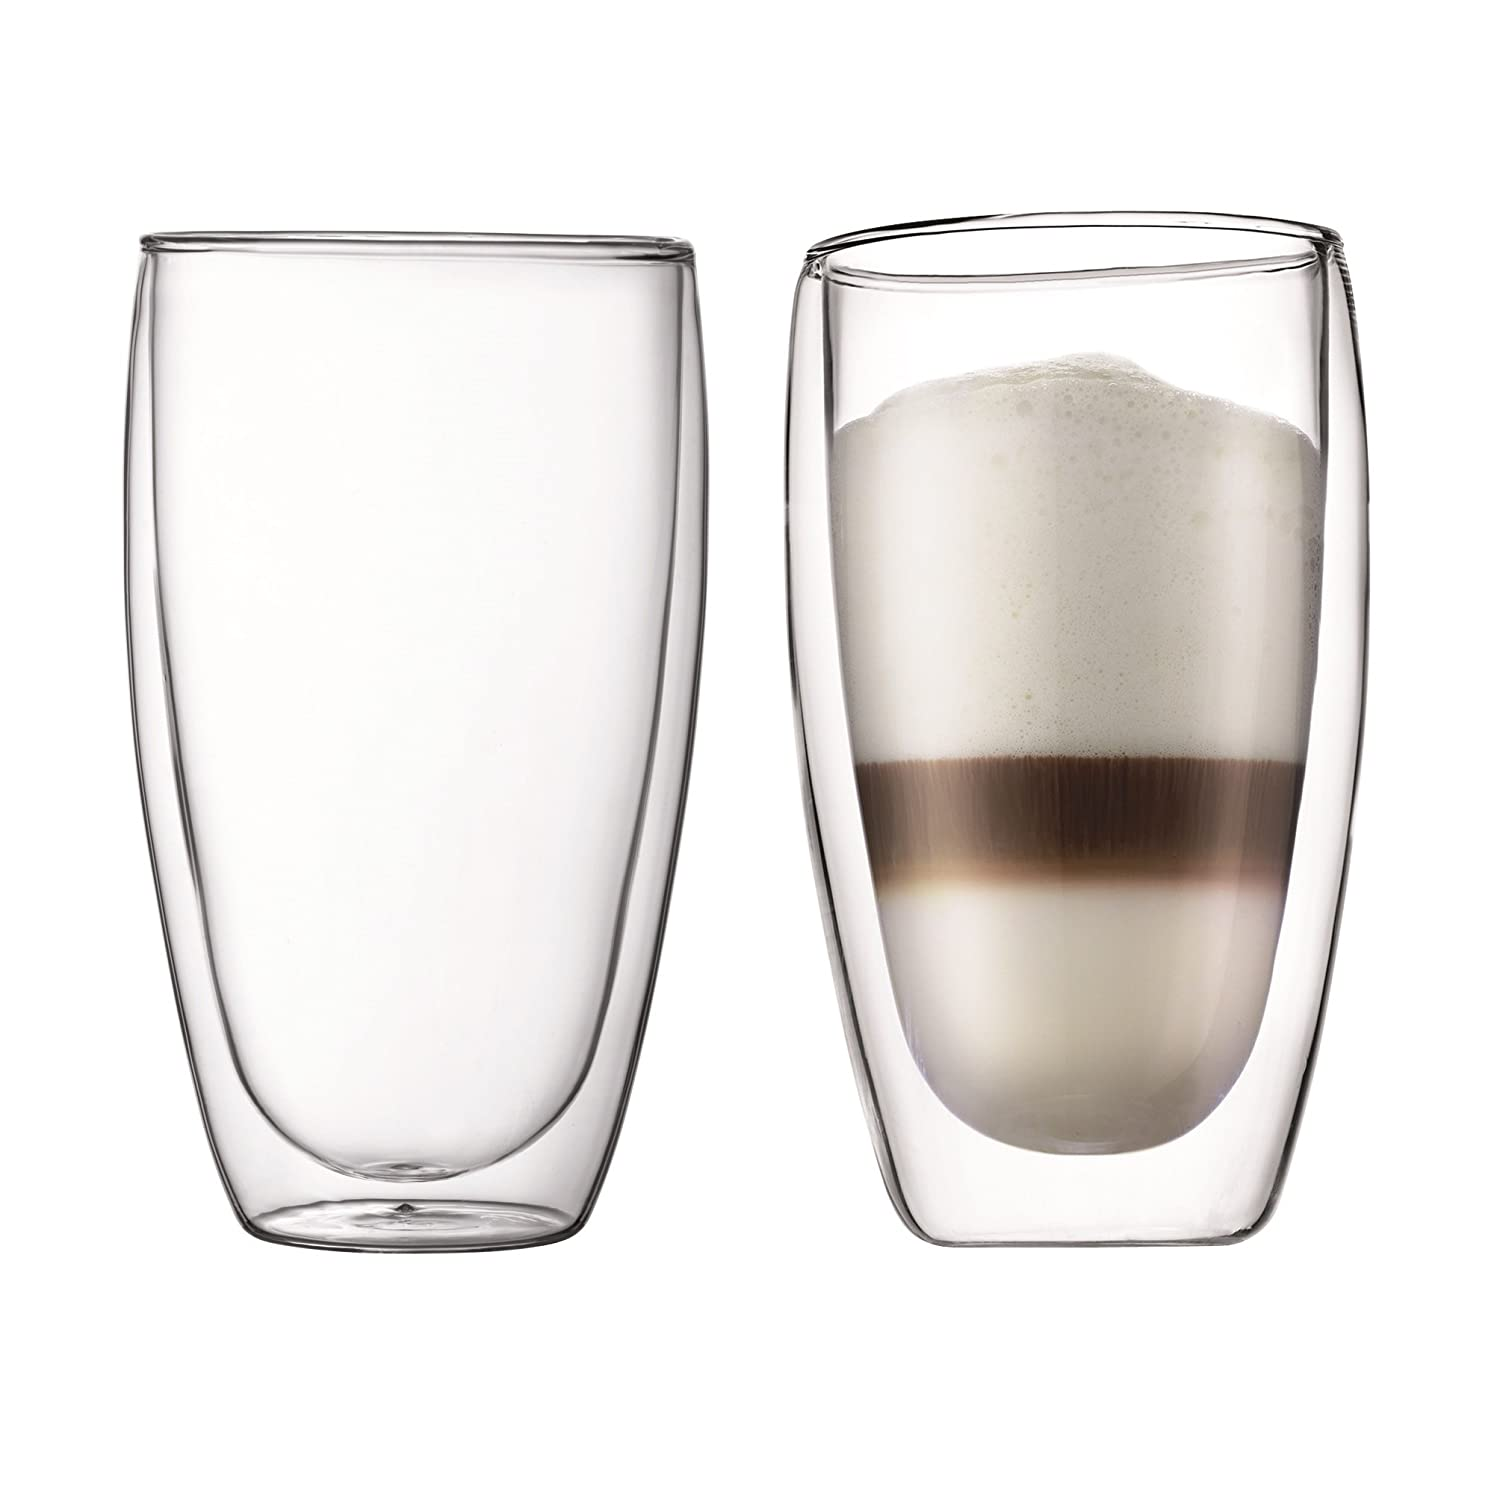 BODUM PAVINA Double Walled Thermo Glasses 0.08 L, 2.5 oz, Pair 4557-10 Drinksware Casual Drinkware